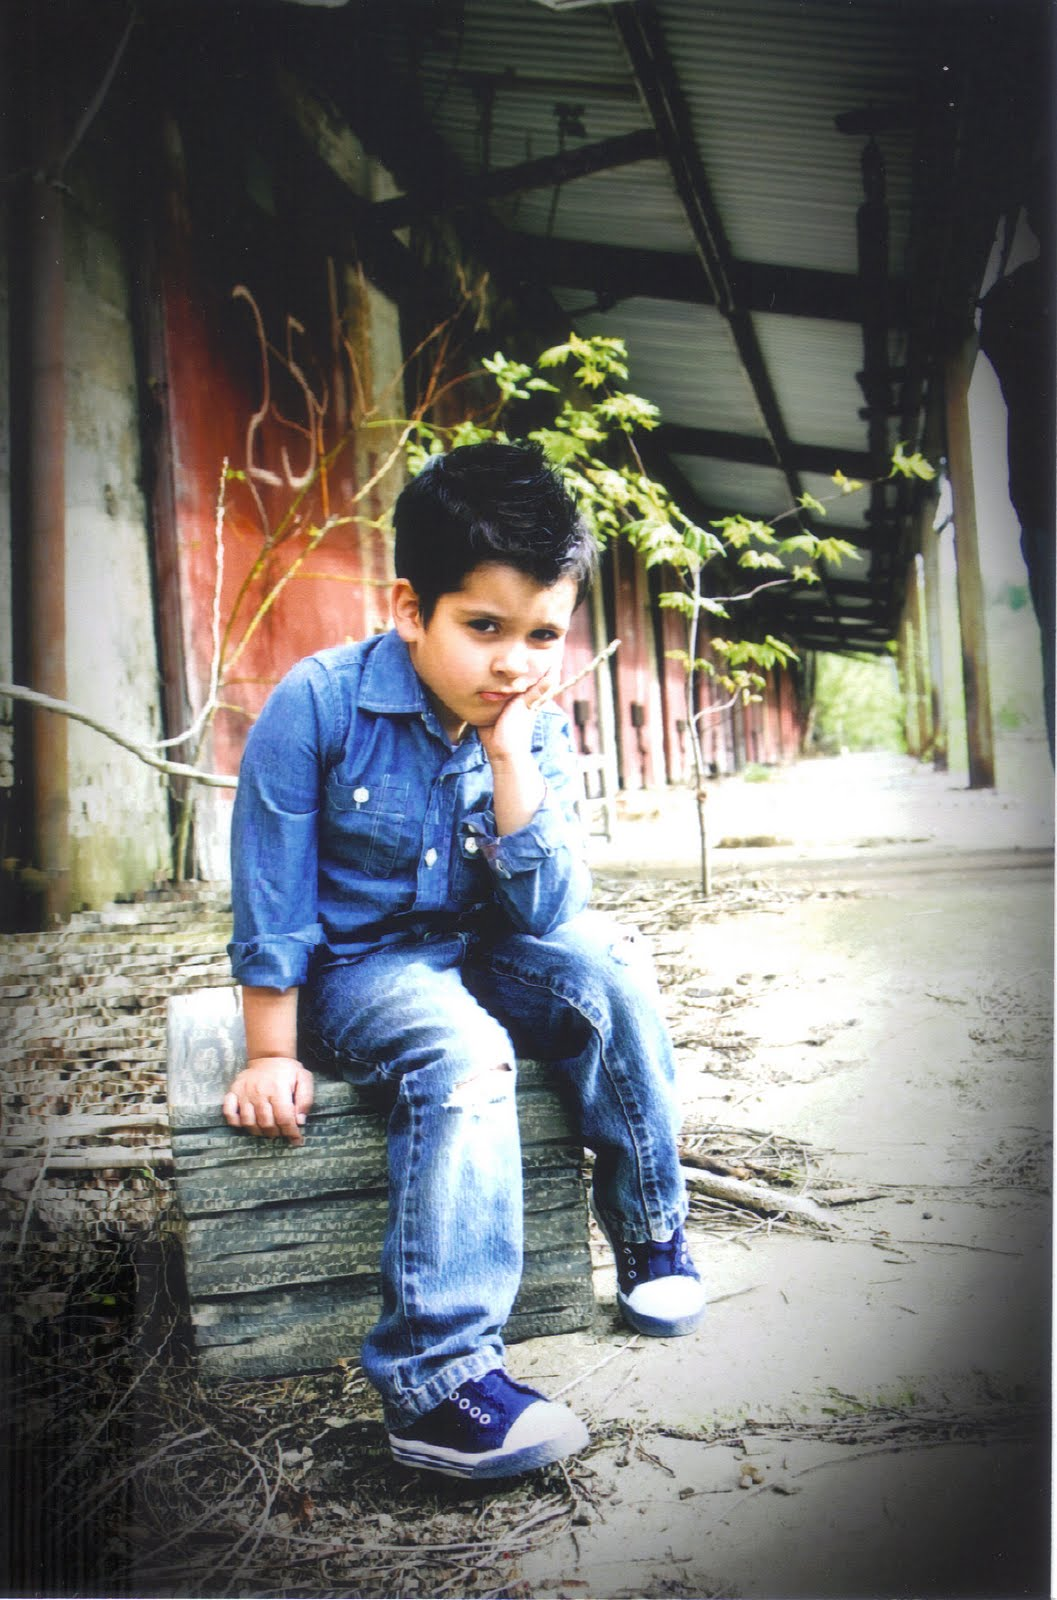 Little one wins over greeting card company with his good looks american greetings a cleveland based greeting card company has requested little antonio bonilla back for more kristyandbryce Choice Image